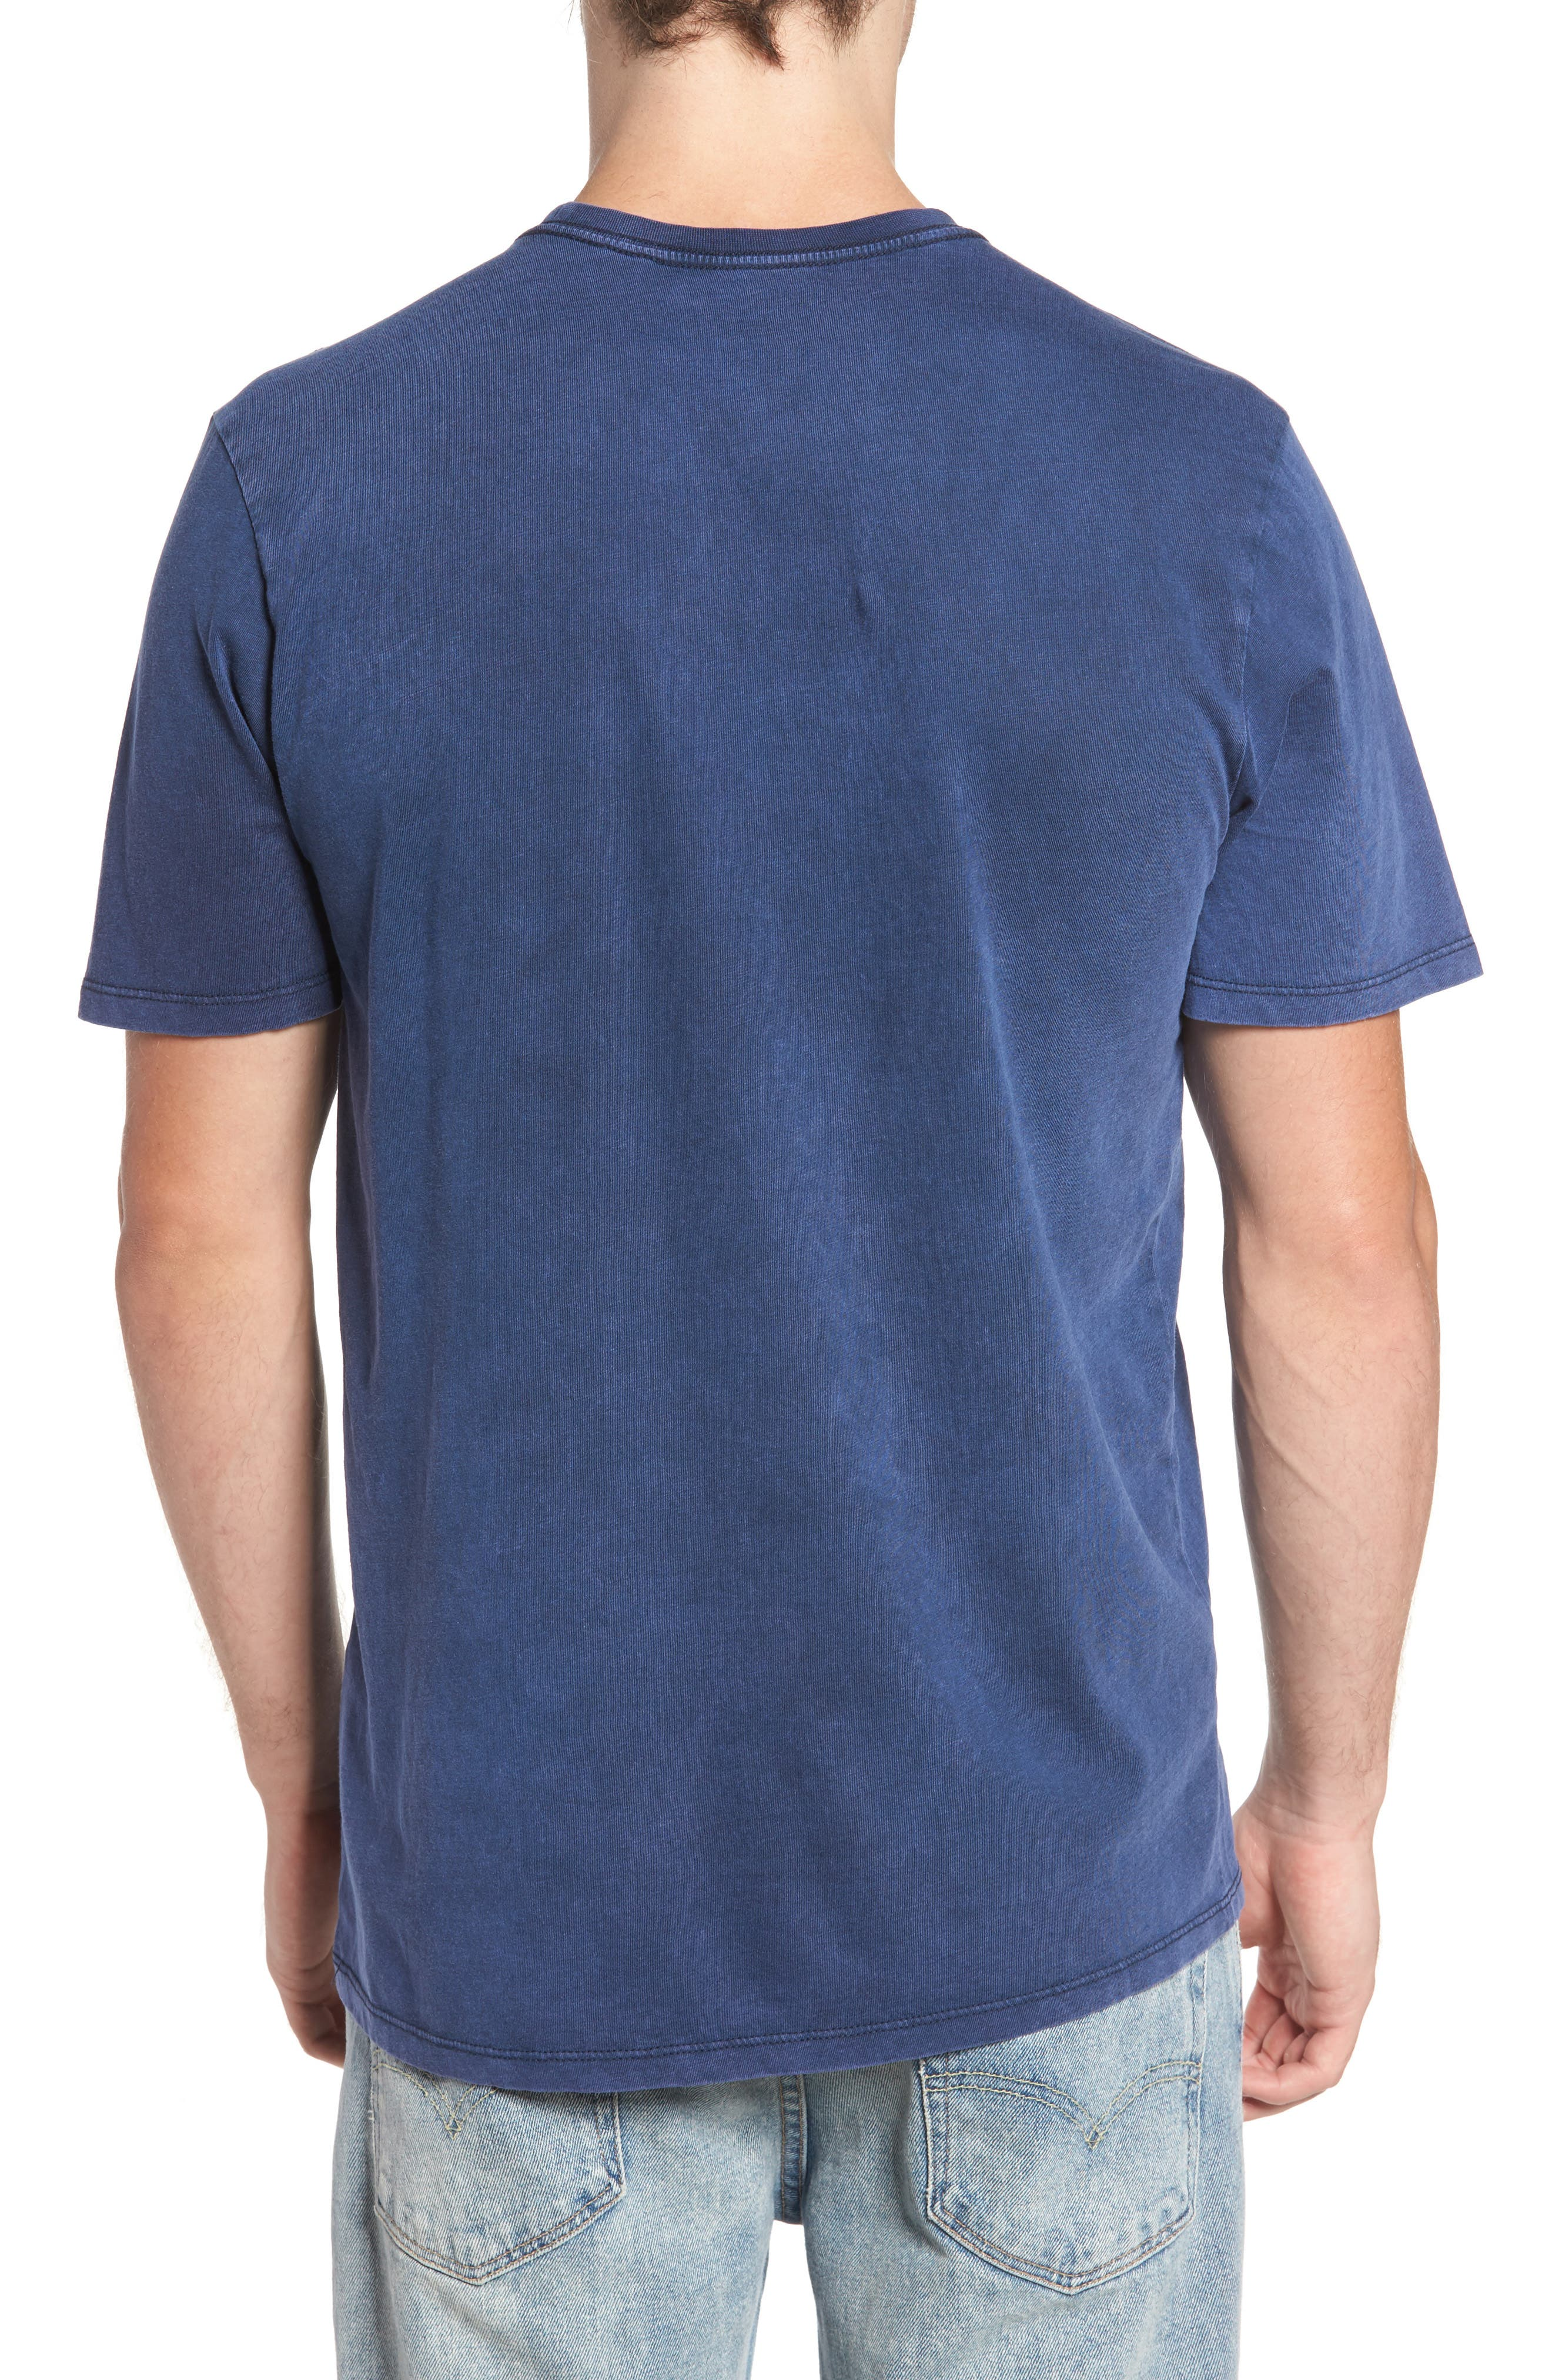 Alternate Image 2  - Hurley One and Only Acid Wash T-Shirt